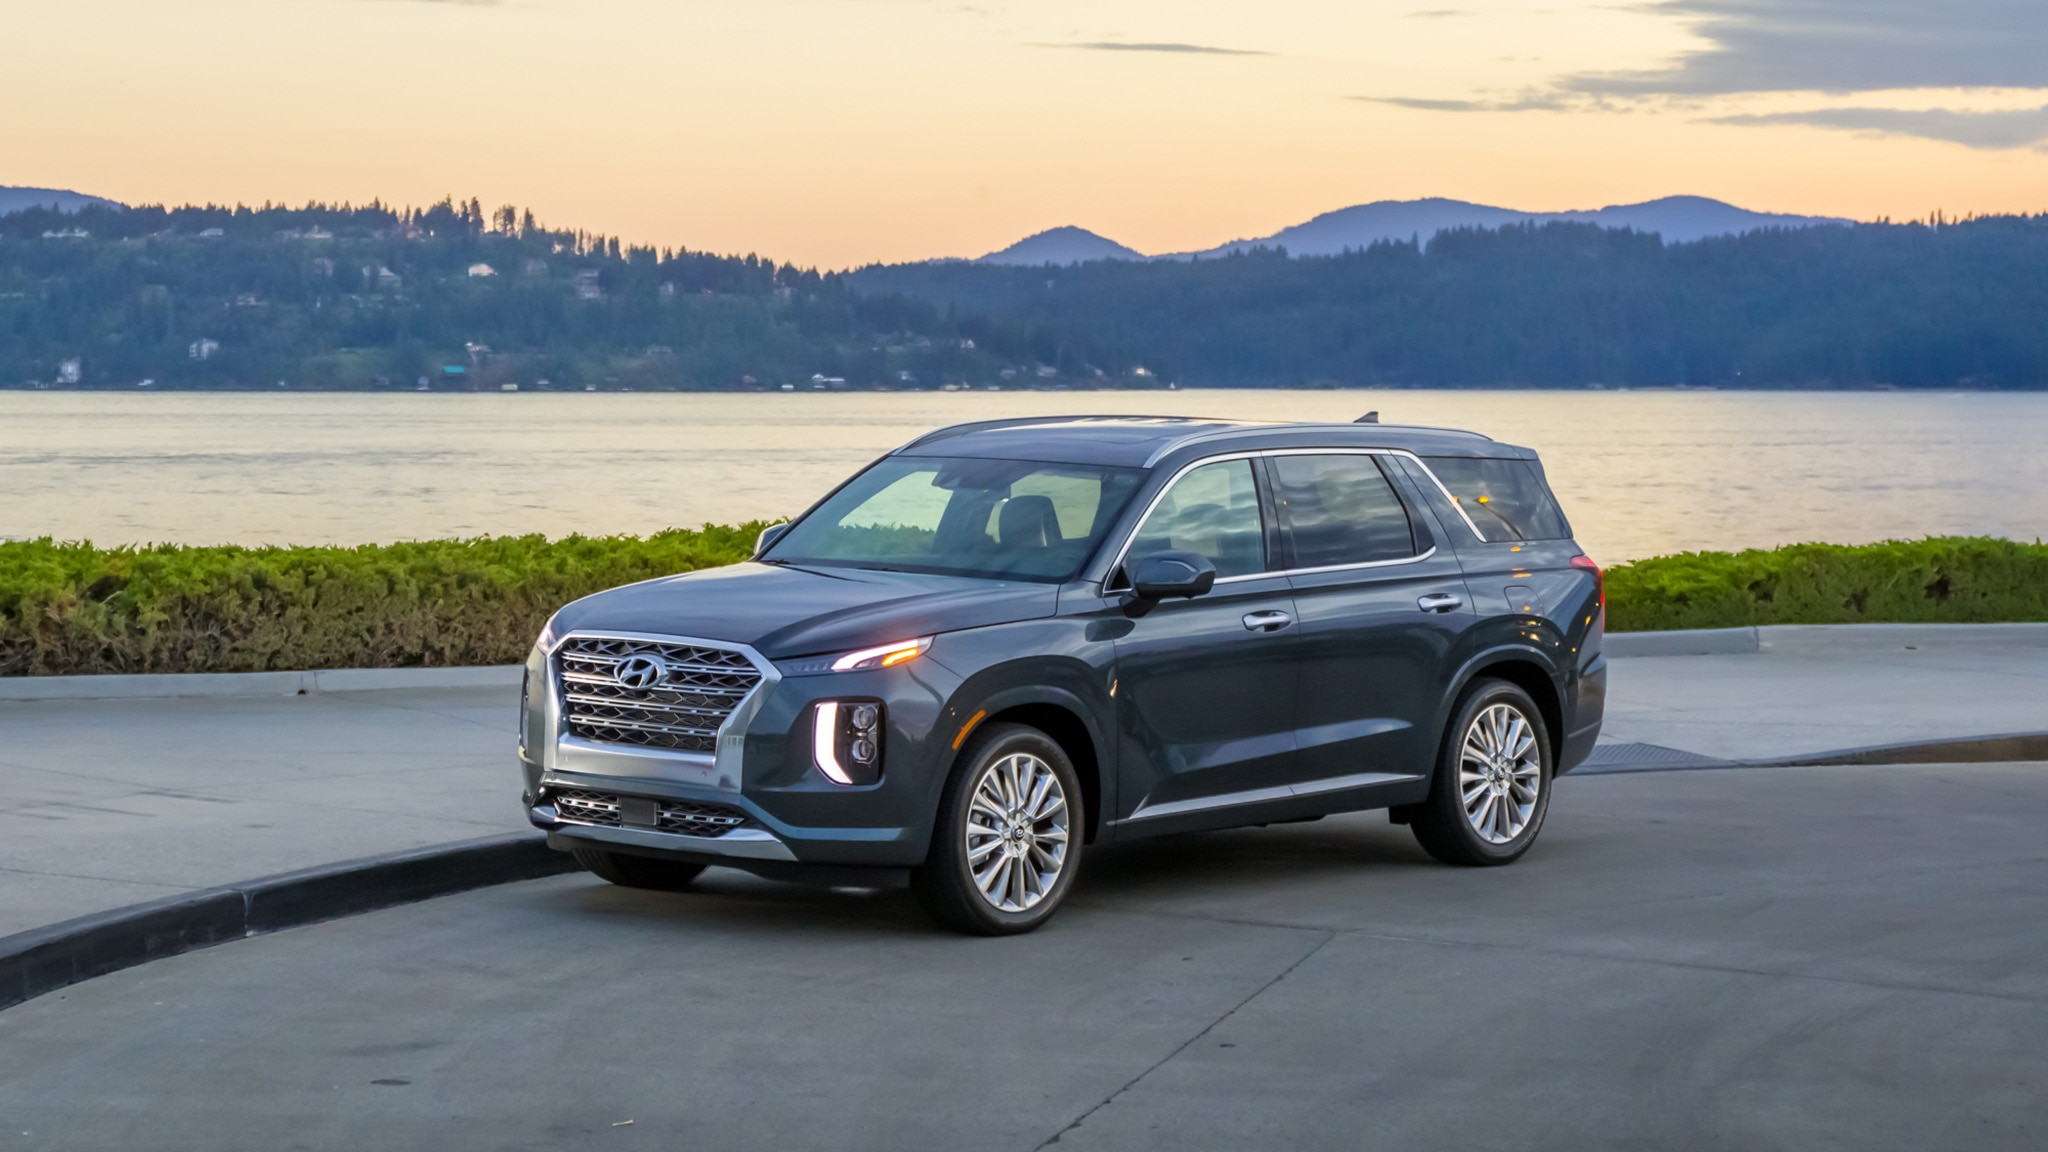 2020 Hyundai Palisade First Drive Review: A Strong Showing ...